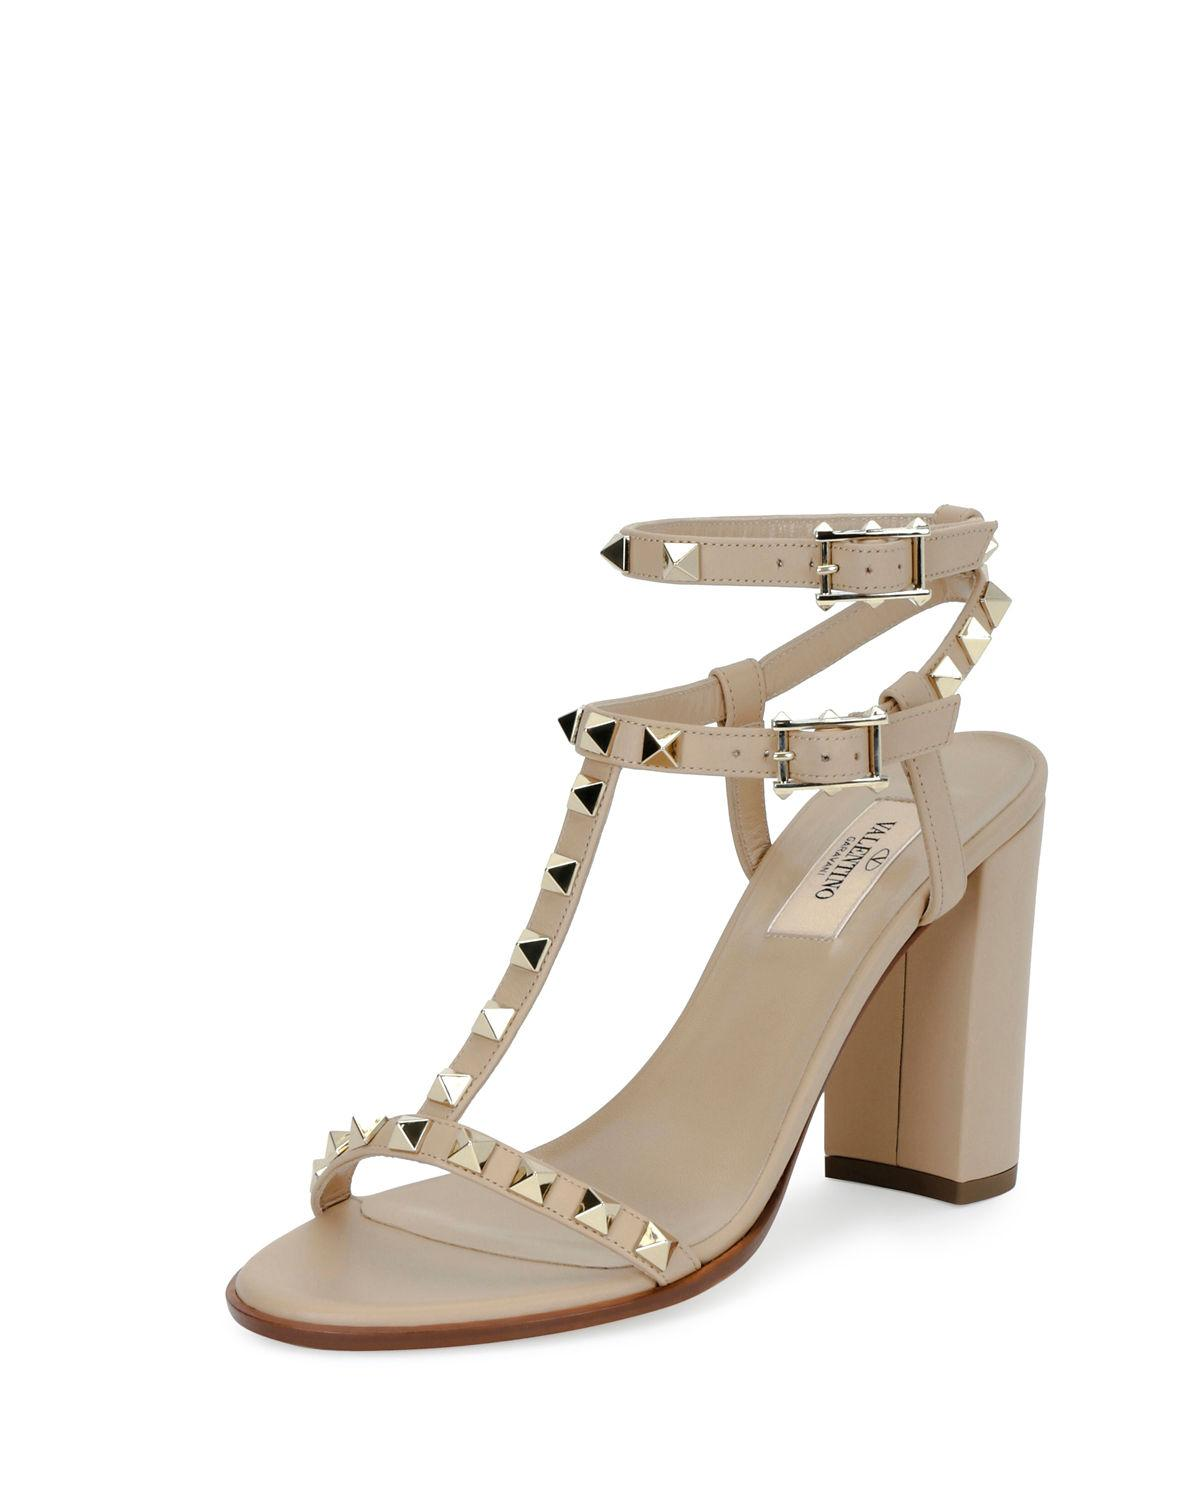 dc1c1a5b093e Lyst - Valentino Rockstud T-strap 90mm Sandal in Natural